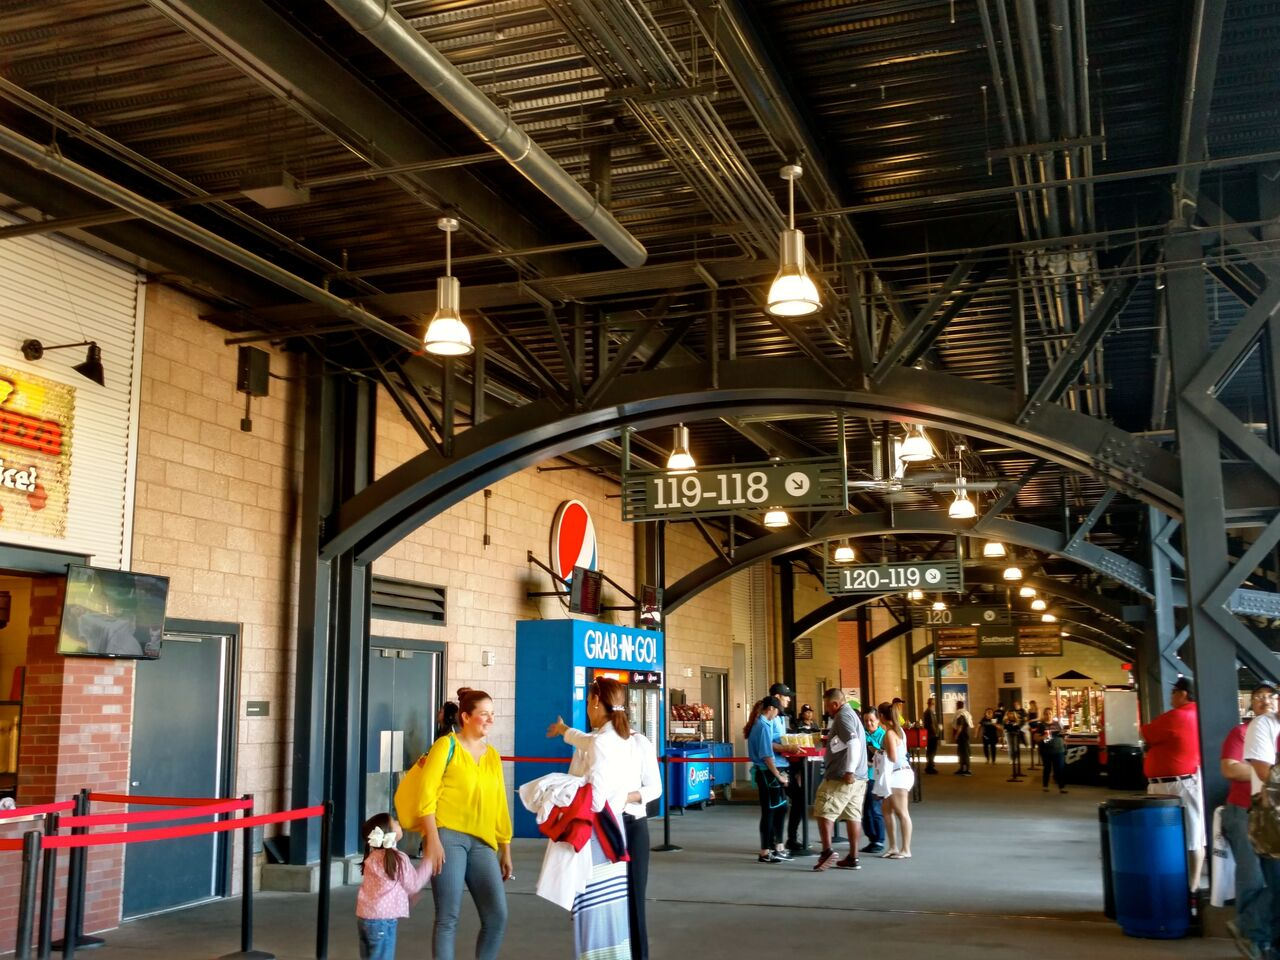 Southwest University Park – El Paso Chihuahuas | Stadium Journey